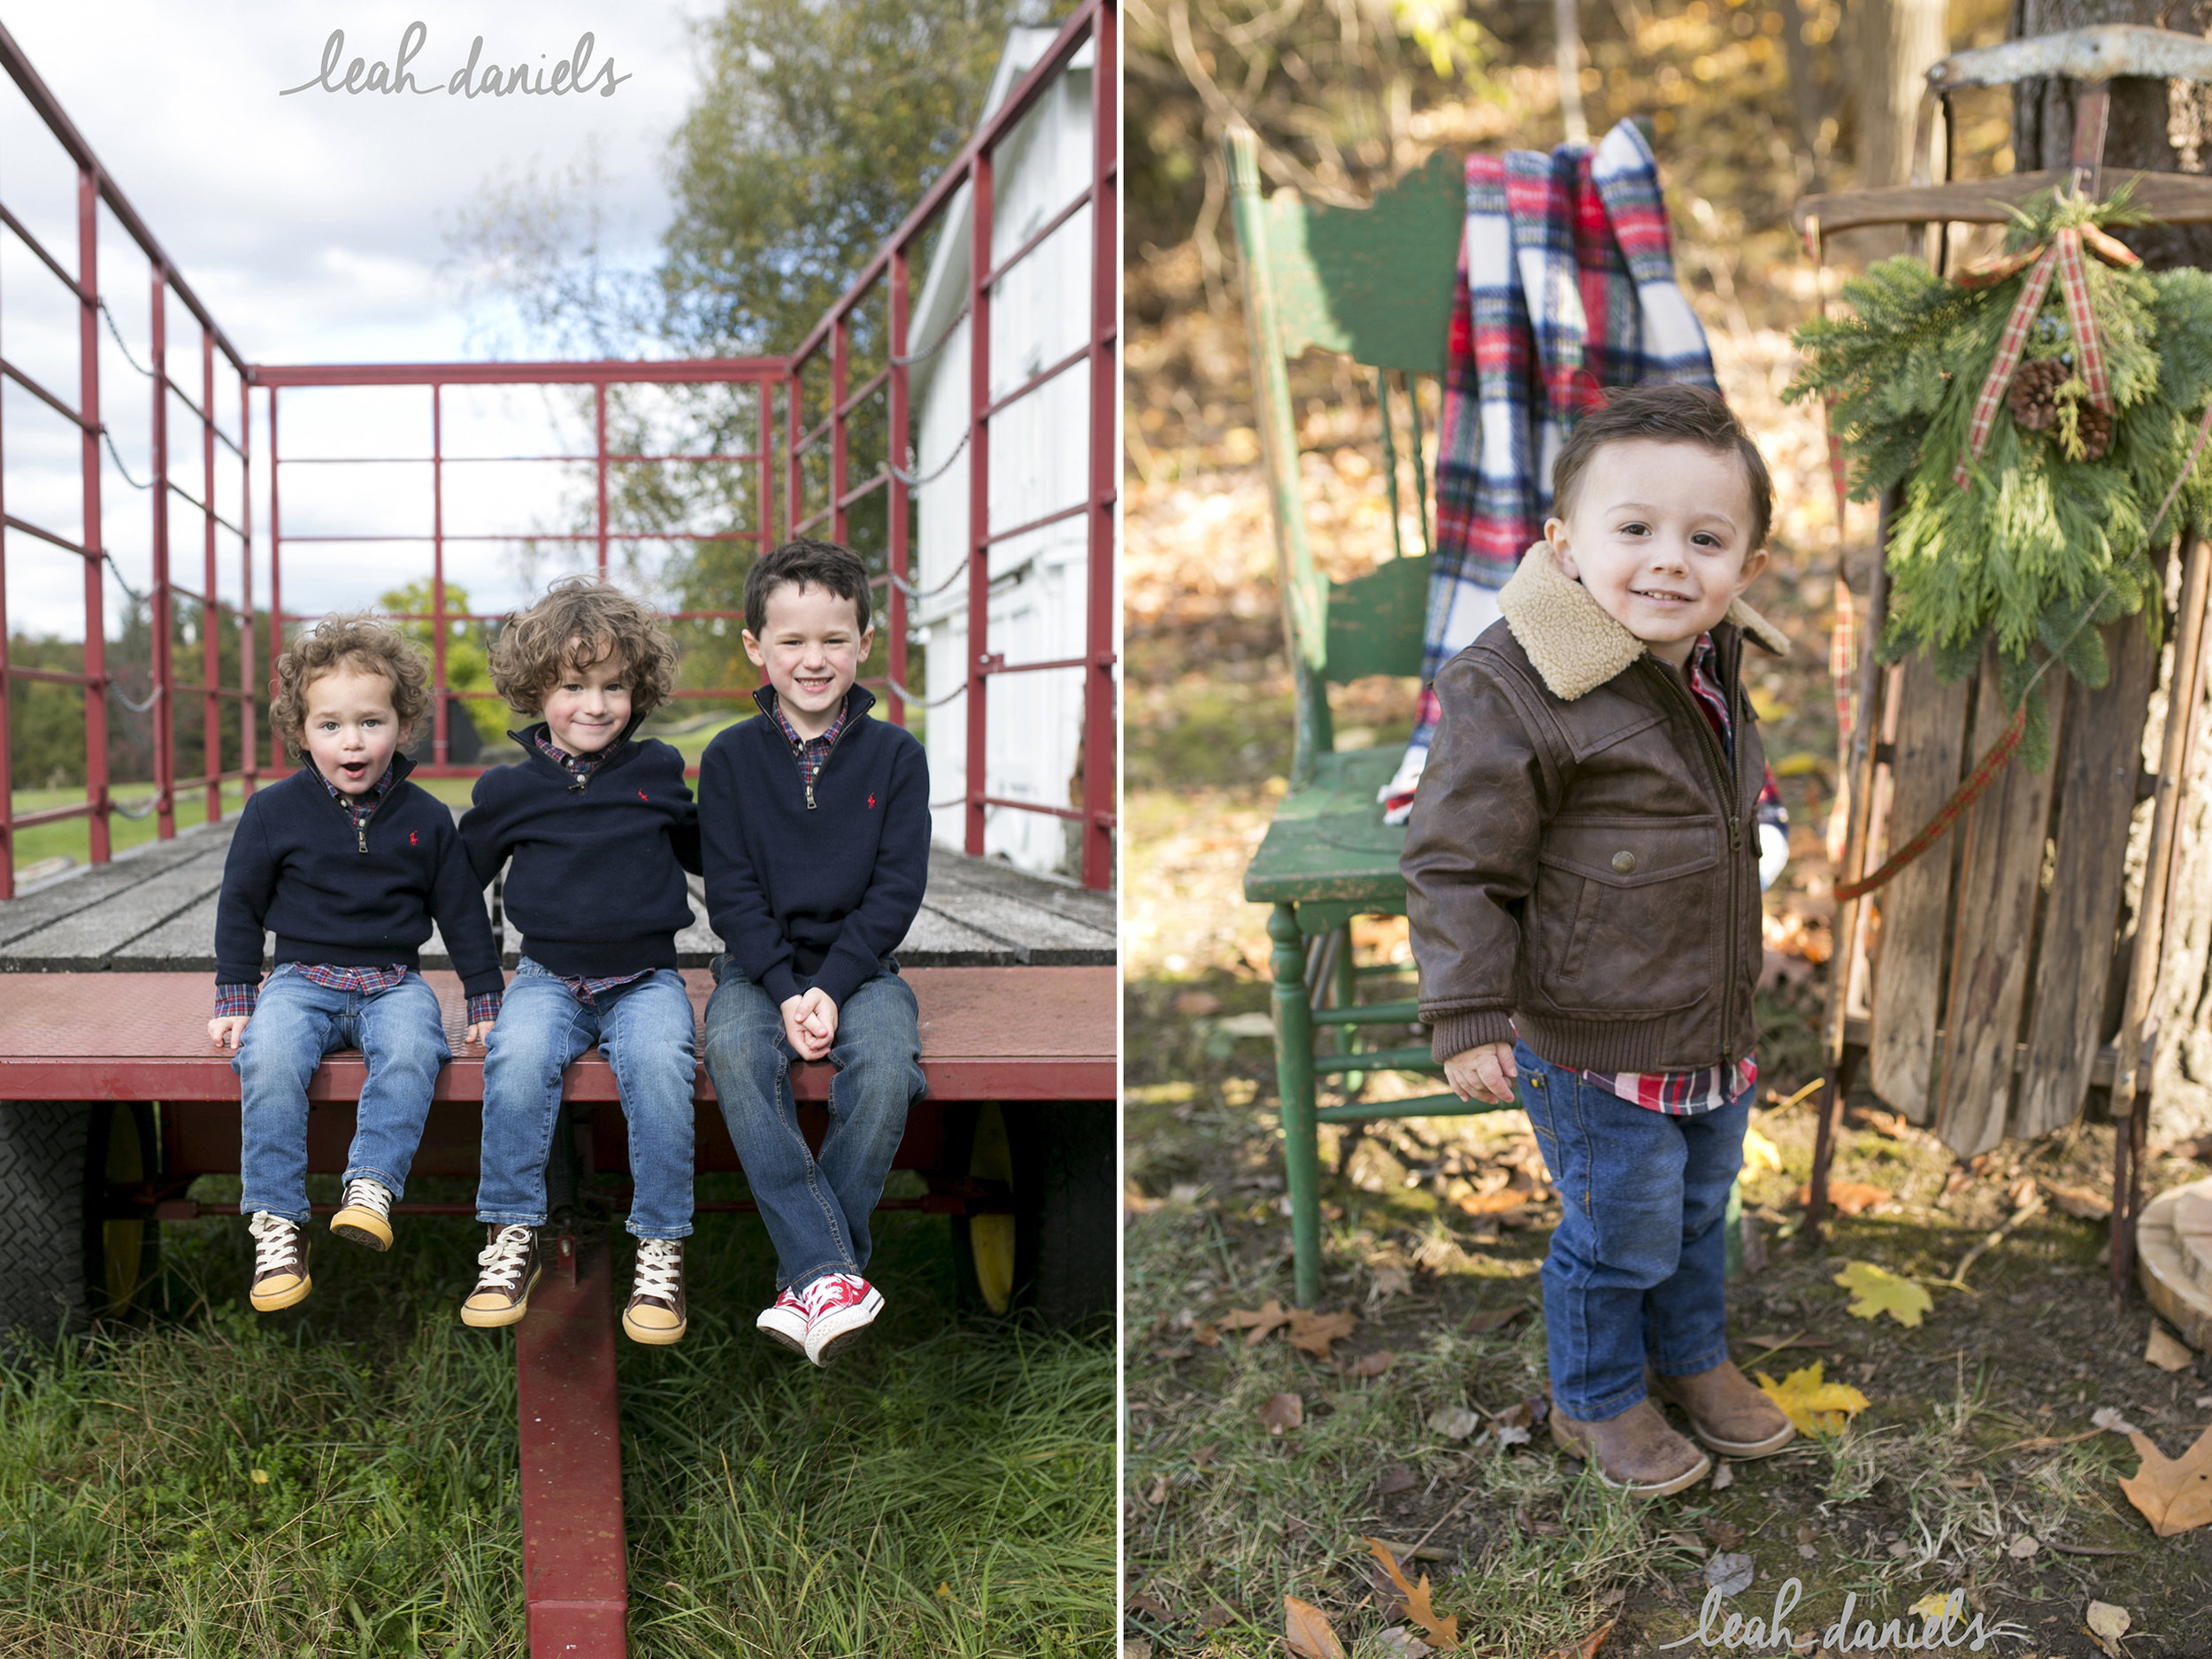 These boys belong to some of my favorite girls! How adorable are they!?